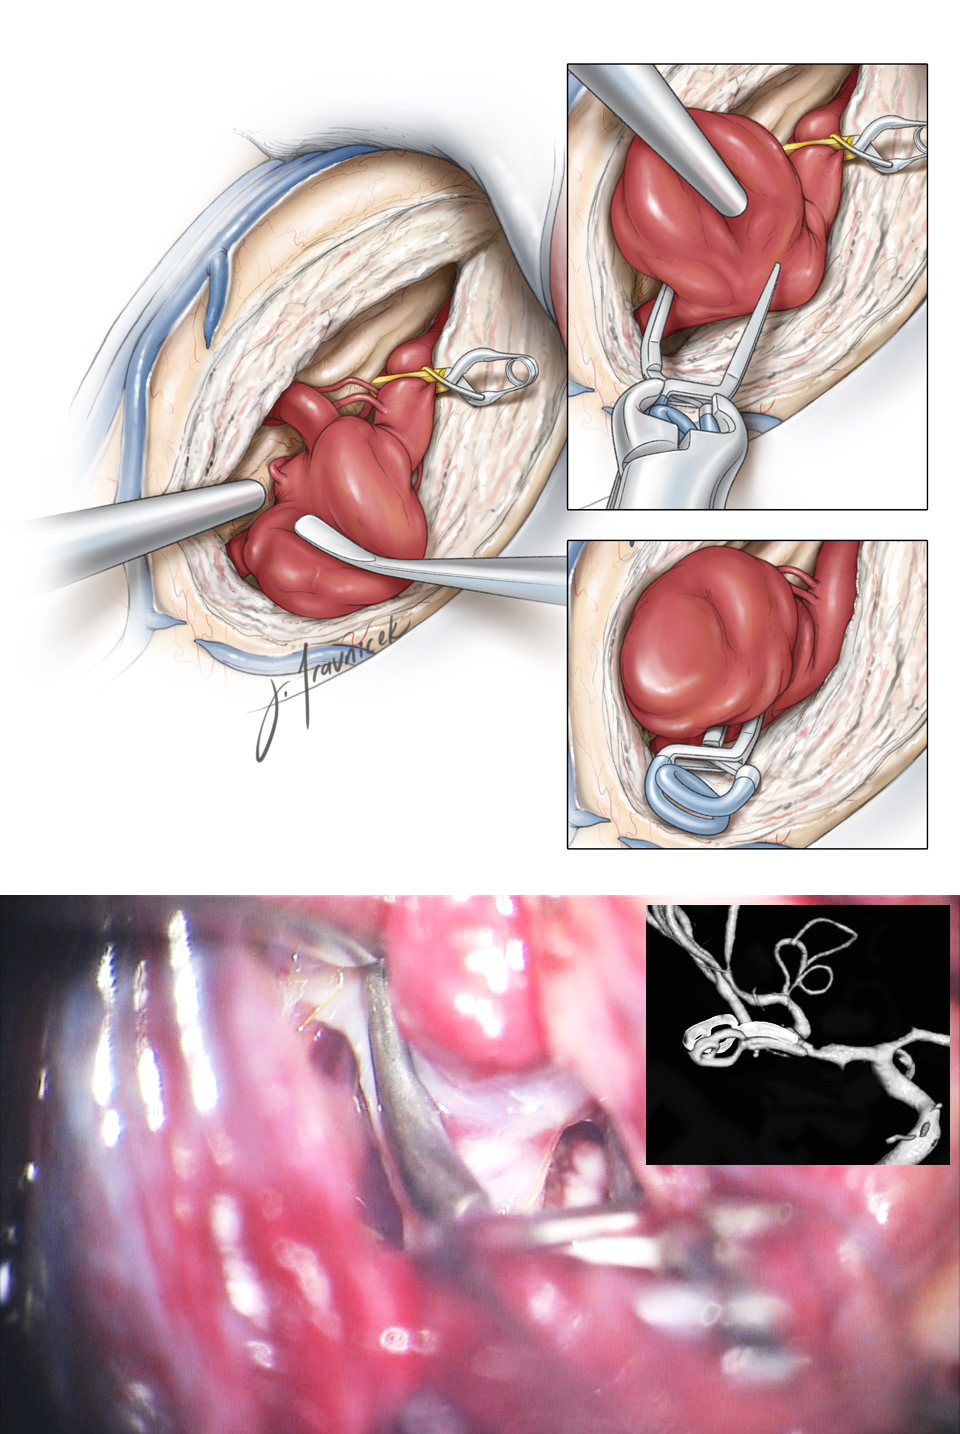 Figure 6: Circumdissection from distal M1 toward proximal M2 trunks discloses the pathoanatomy of the aneurysm. Lateral lenticulostriate arteries are identified and protected. Straight or curved clips (lower intraoperative photo) are quite effective for excluding most aneurysms (inset images.)